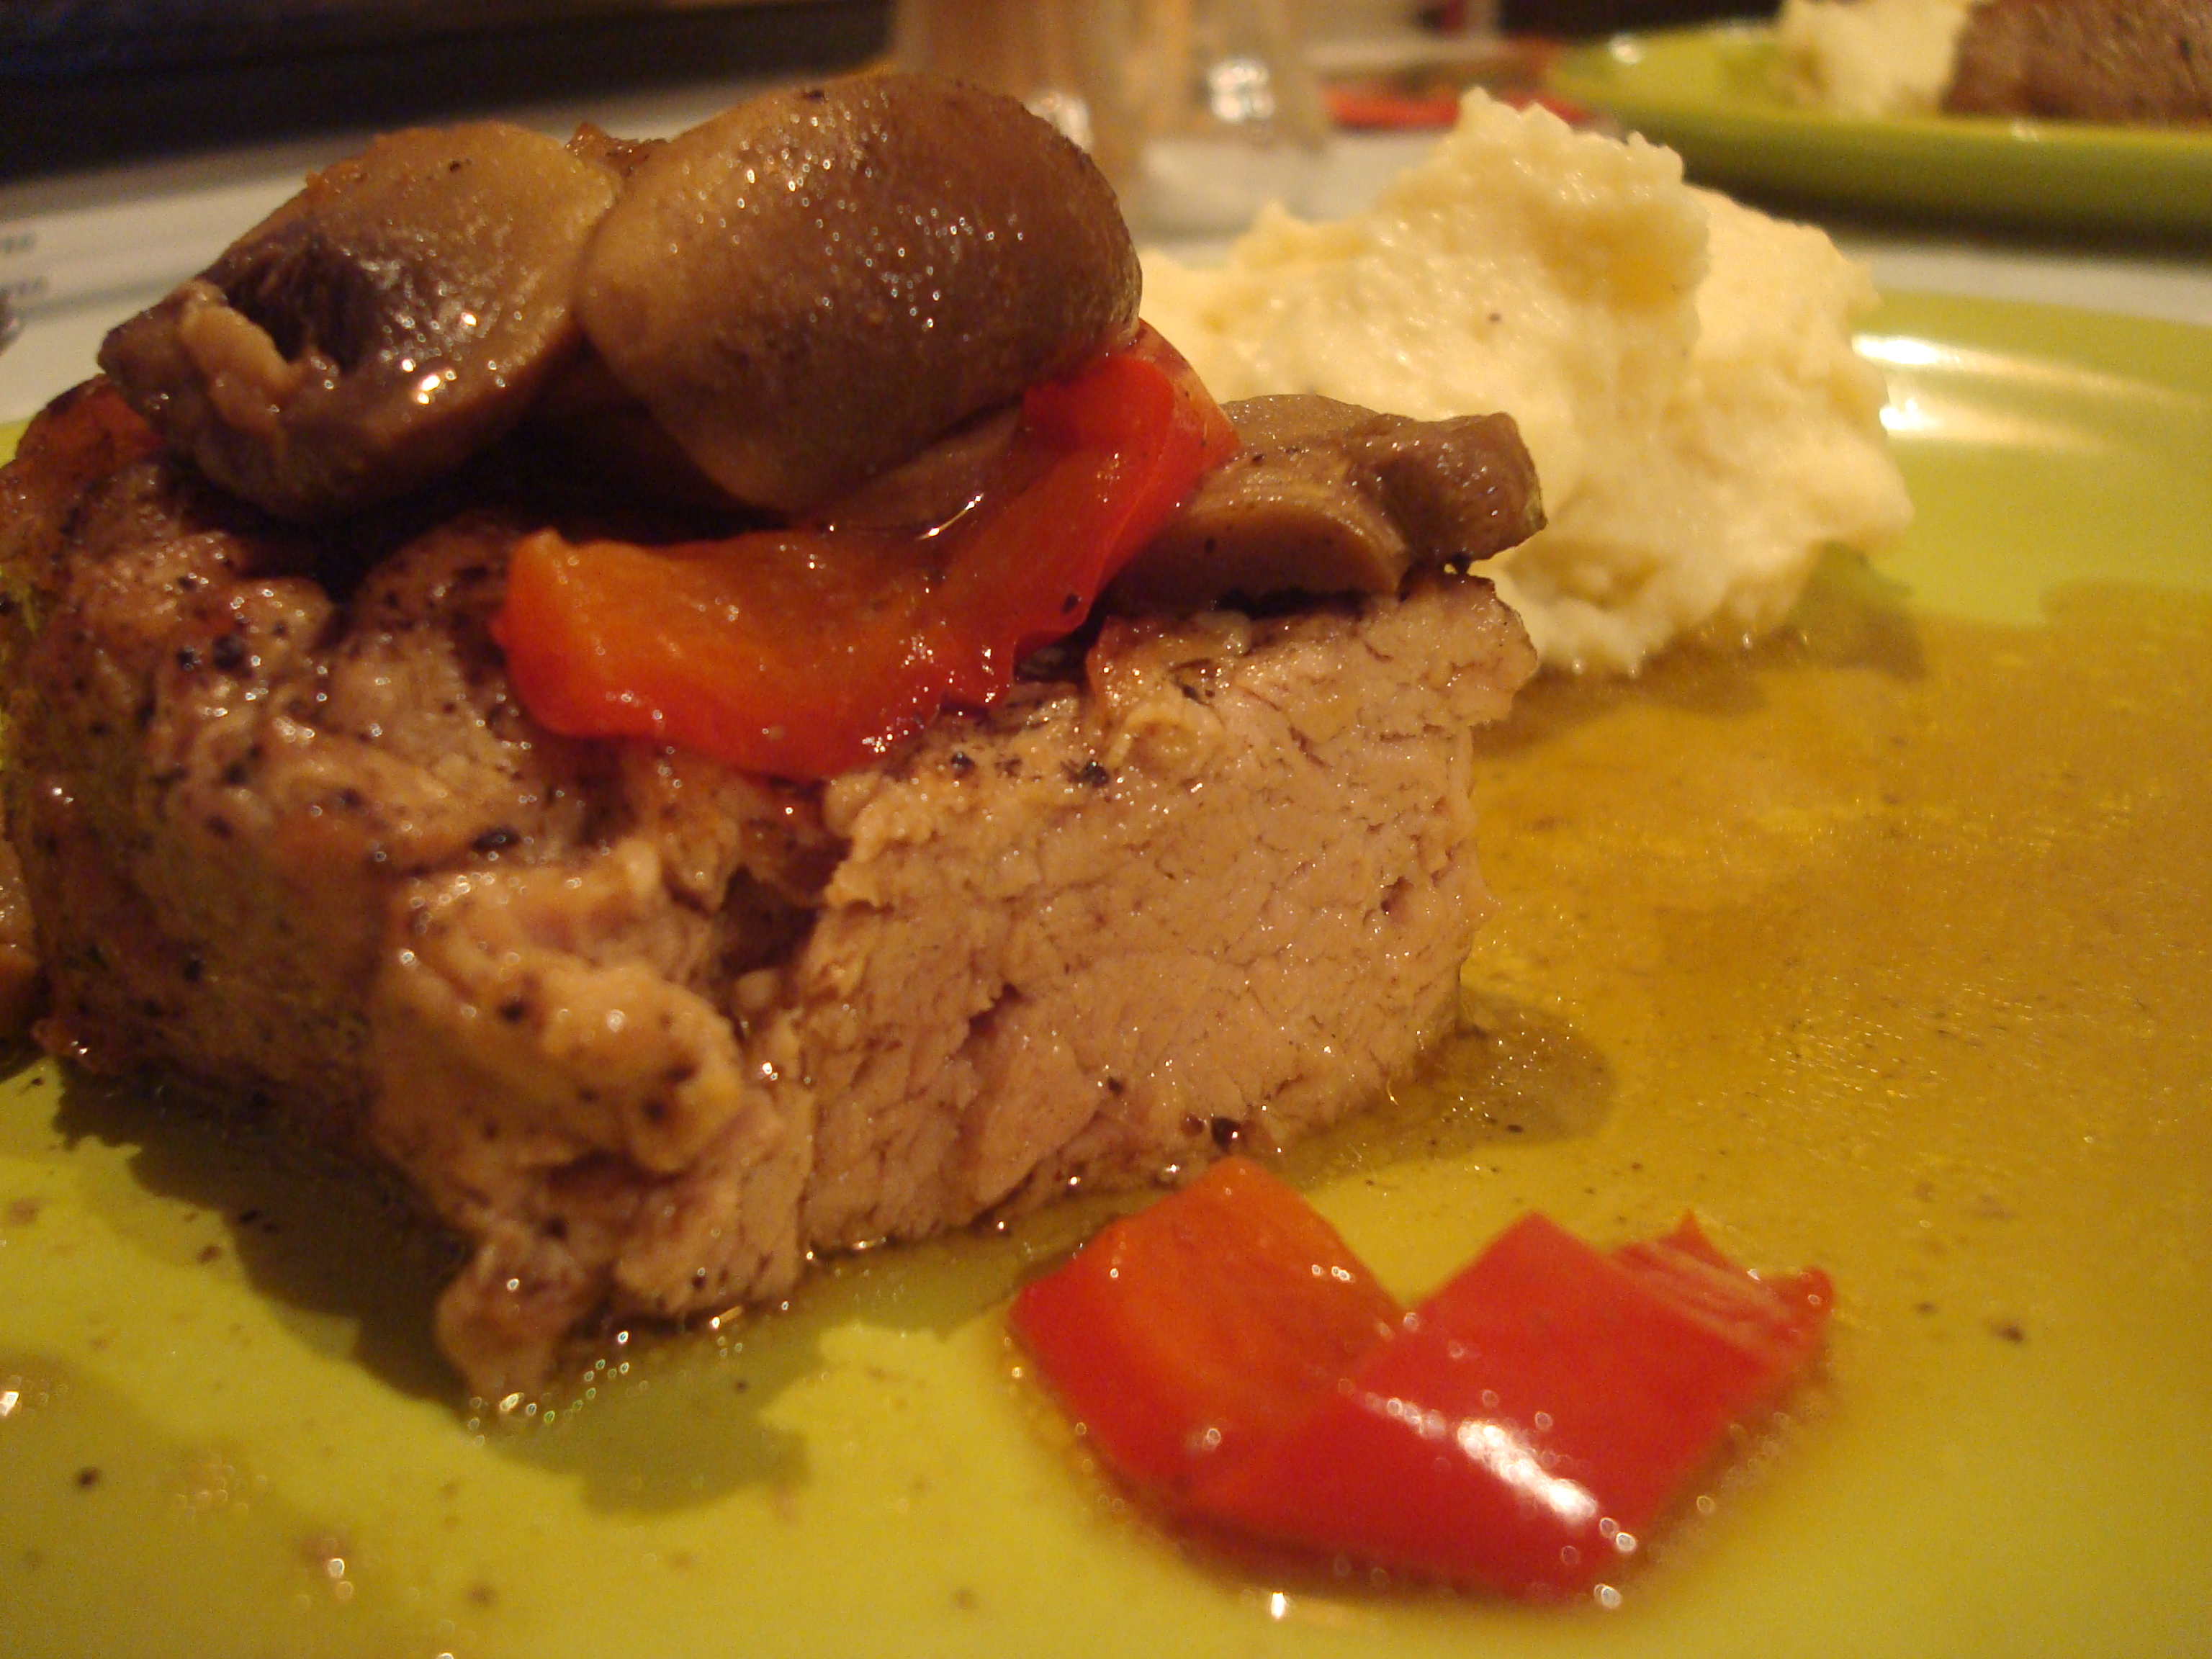 Delicious pork meat dish, Cooking, Meat, Tasty, Tasteful, HQ Photo